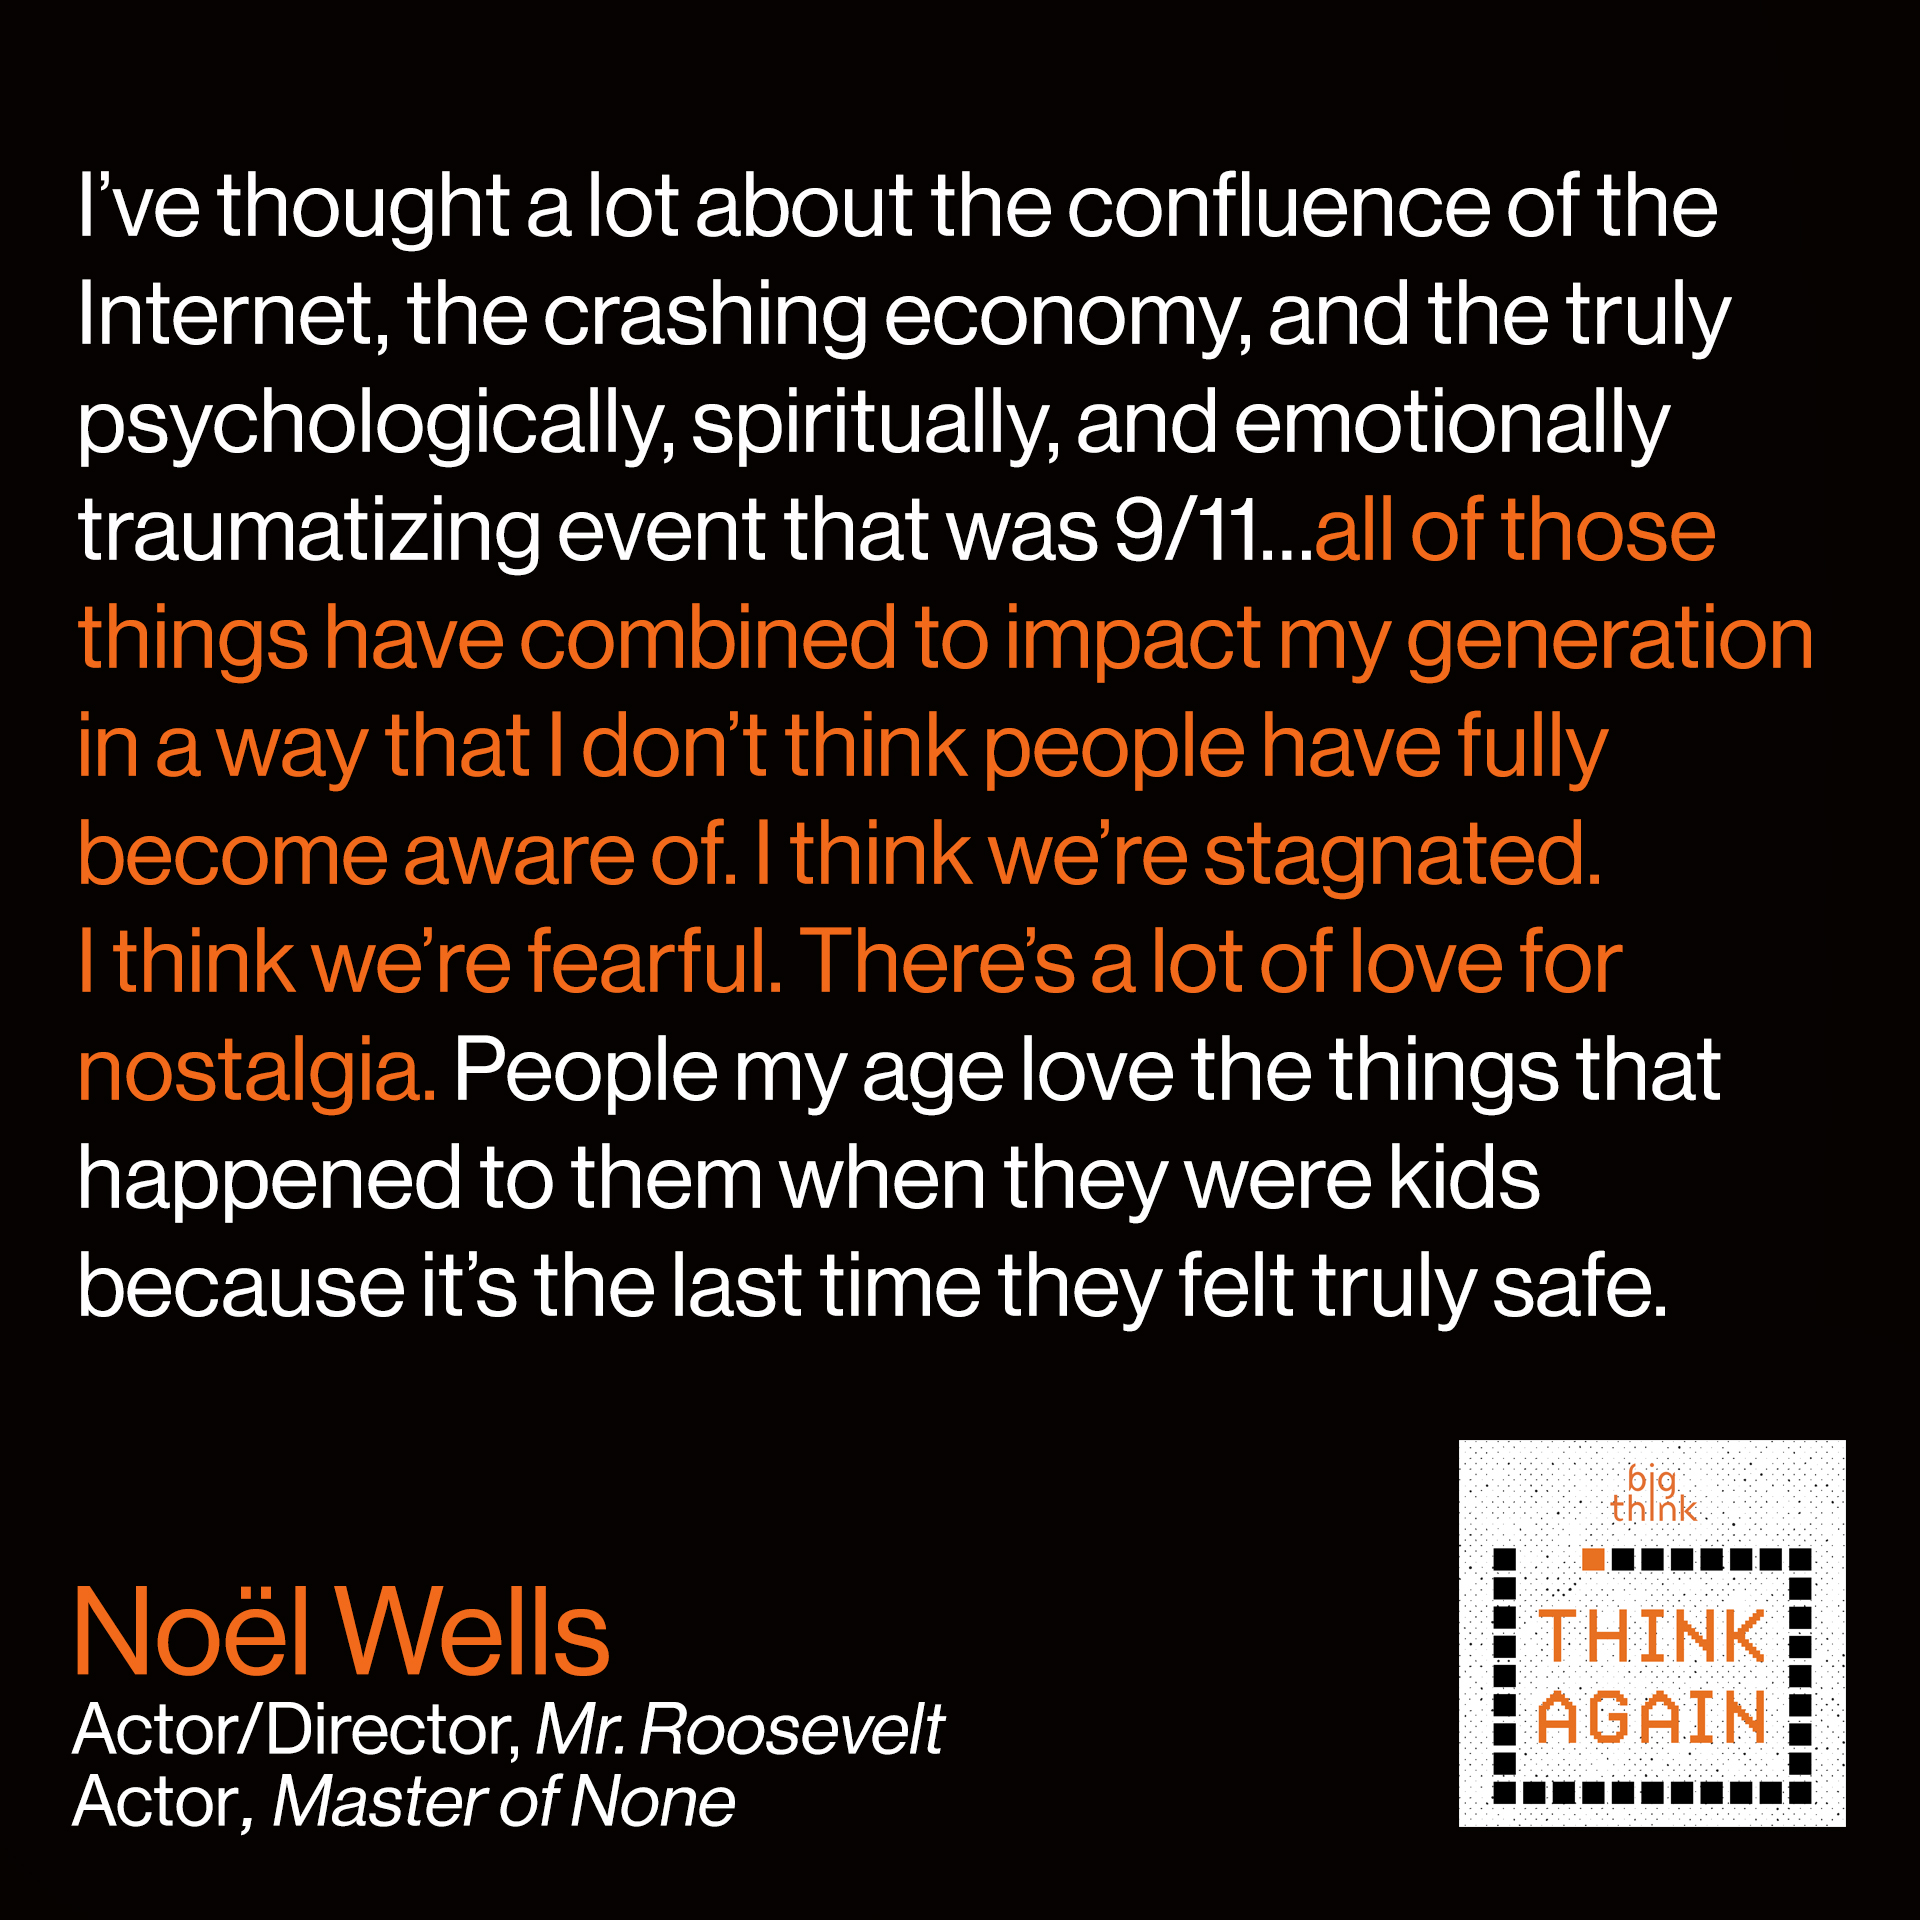 Noel Wells Quote: I've thought a lot about the confluence of the internet,  the crashing economy, and the  truly psychologically, spiritually,  and emotionally traumatizing  event that was 9/11…all of those  things have combined to impact  my generation in a way that I don't  think people have fully become aware of. I think we're stagnated. I think we're fearful. There's a lot of love for nostalgia. People my age love the things that happened to them when they were kids because I think it's the last time they felt truly safe.